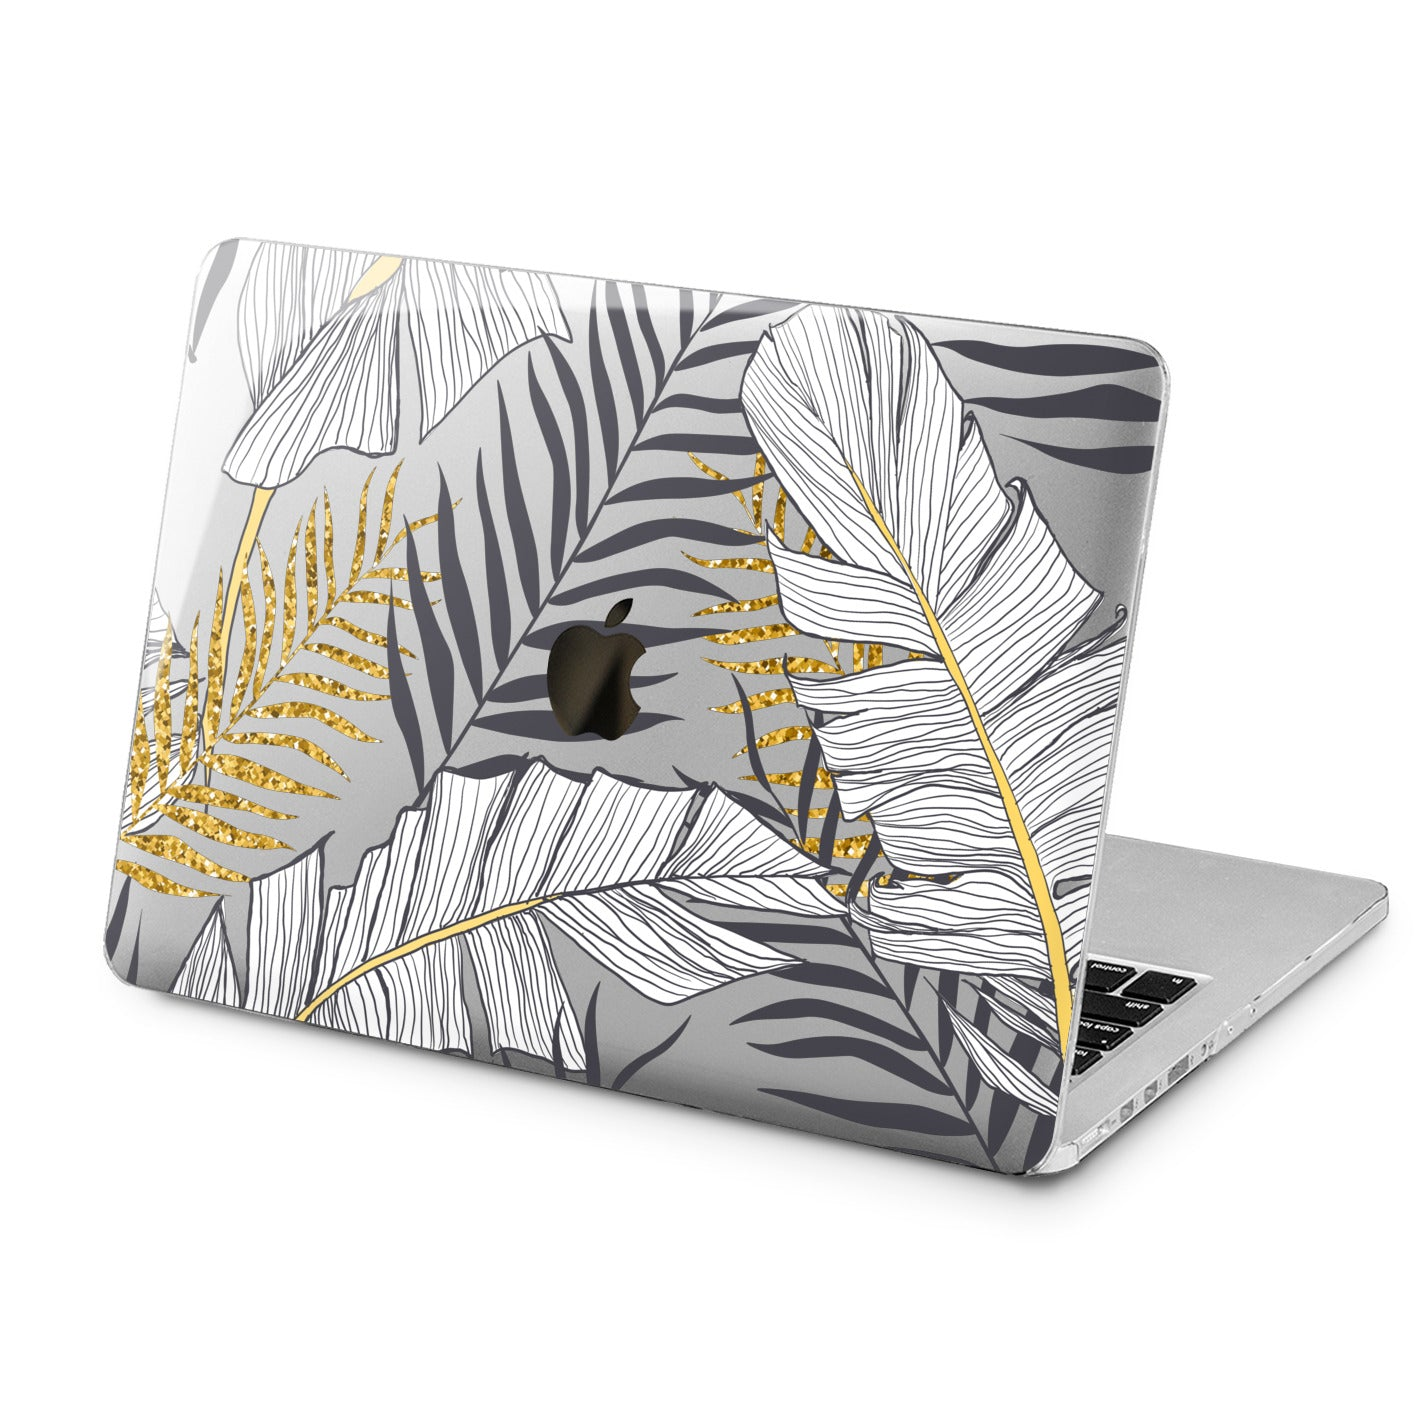 Lex Altern Lex Altern Golden Leaves Case for your Laptop Apple Macbook.